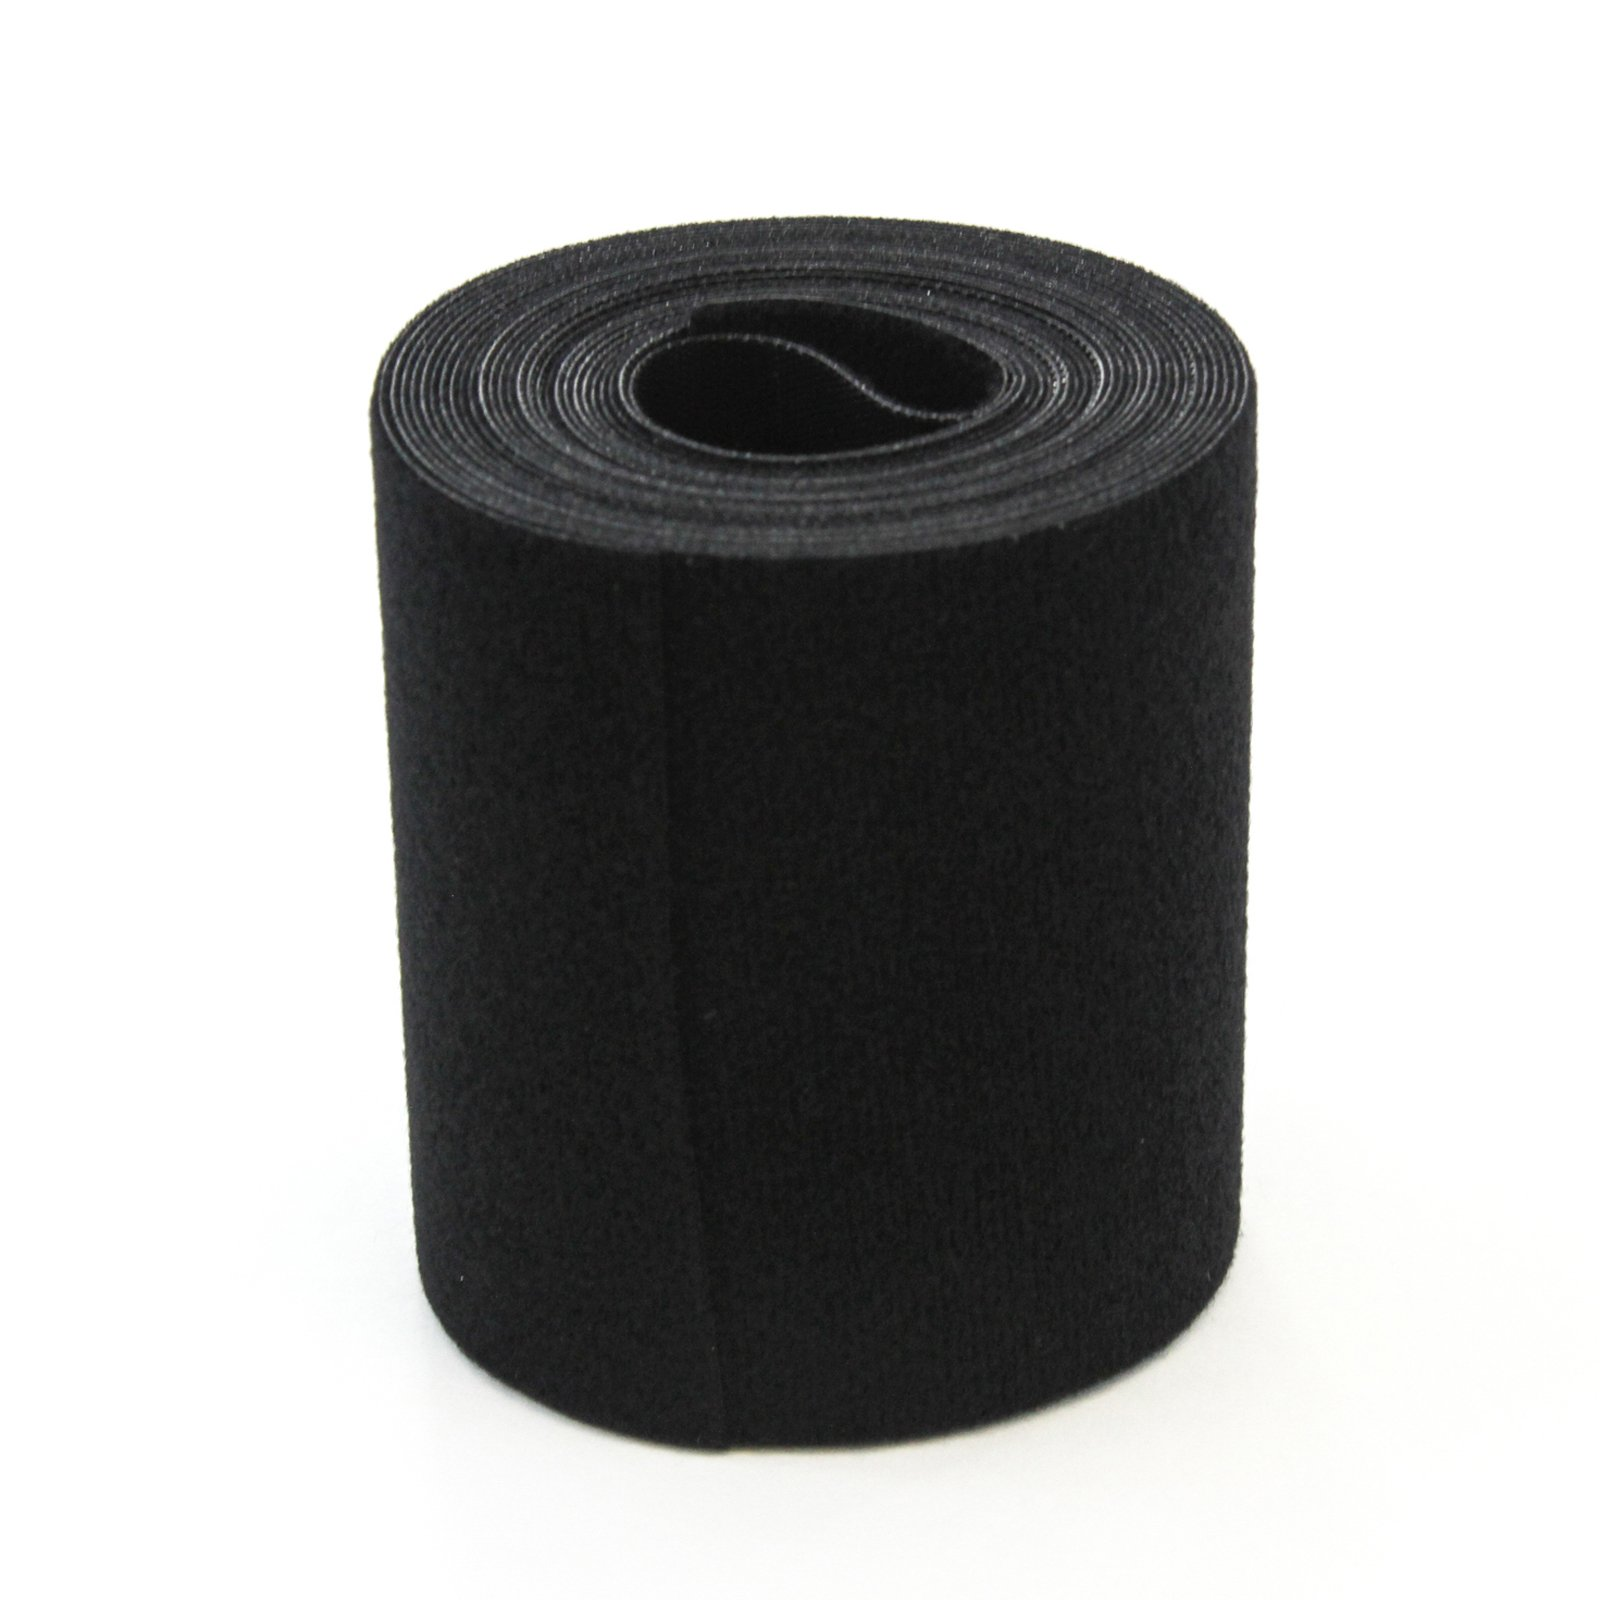 15FT REUSABLE 4 Inch Roll Hook & Loop Cable Fastening Tape Cord Wraps Straps